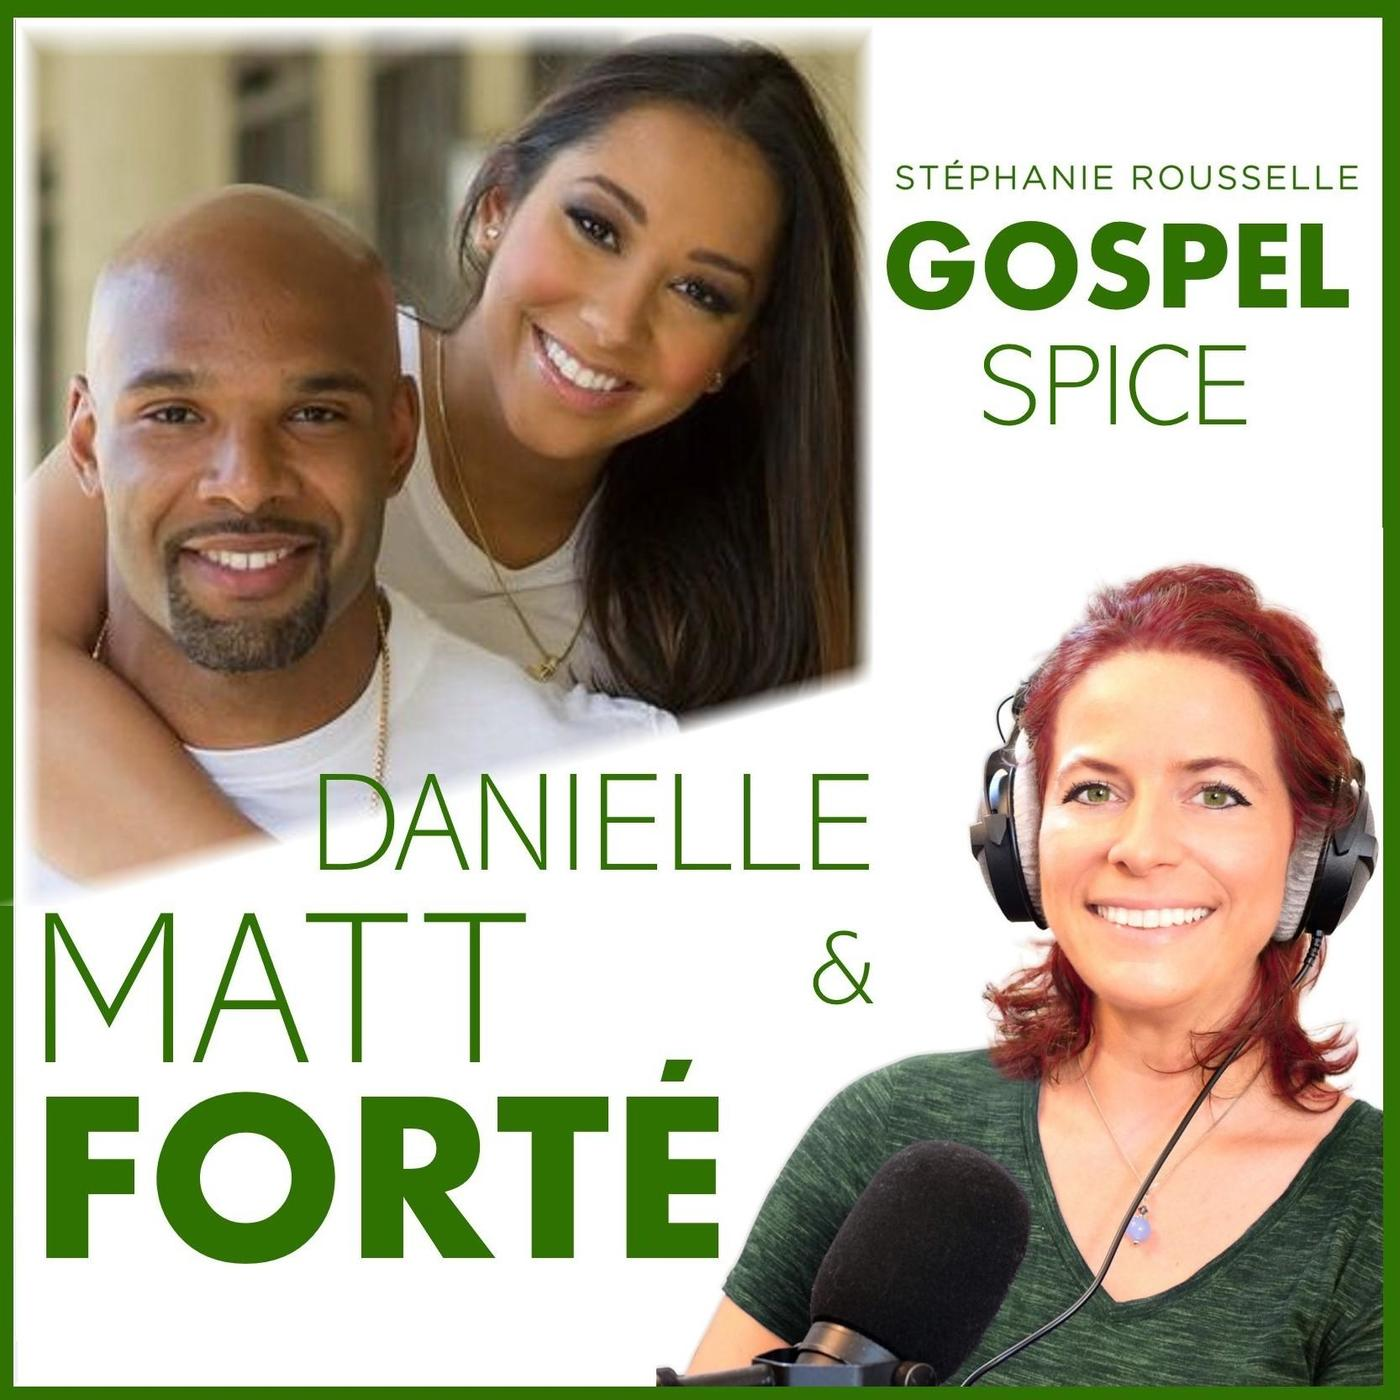 Danielle and Matt Forté: from pro football to Christ